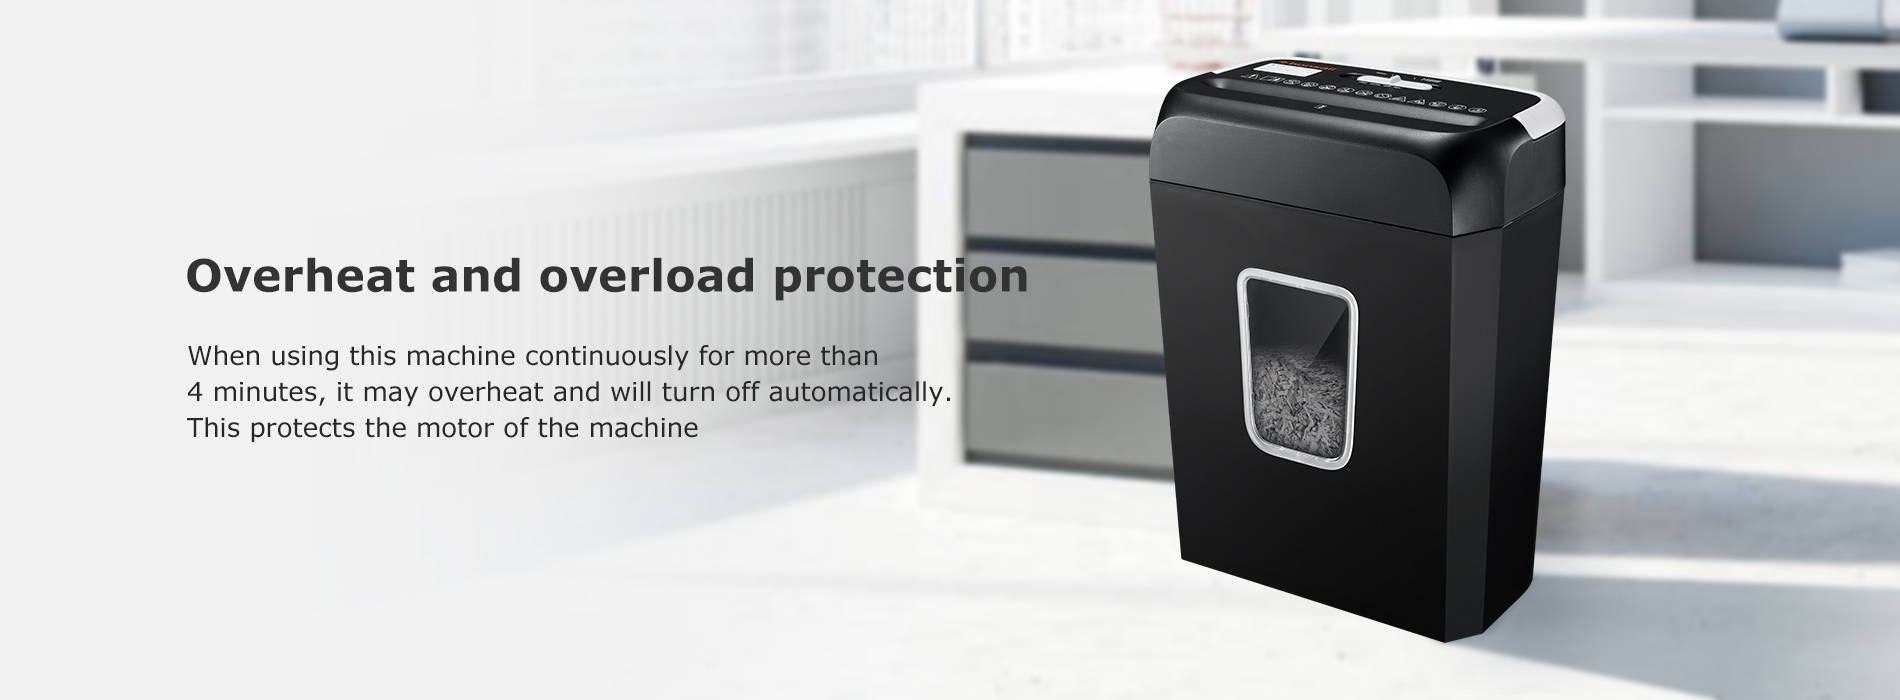 Overheat and overload protection  When using this machine continuously for more than 4 minutes, it may overheat and will turn off automatically. This protects the motor of the machine